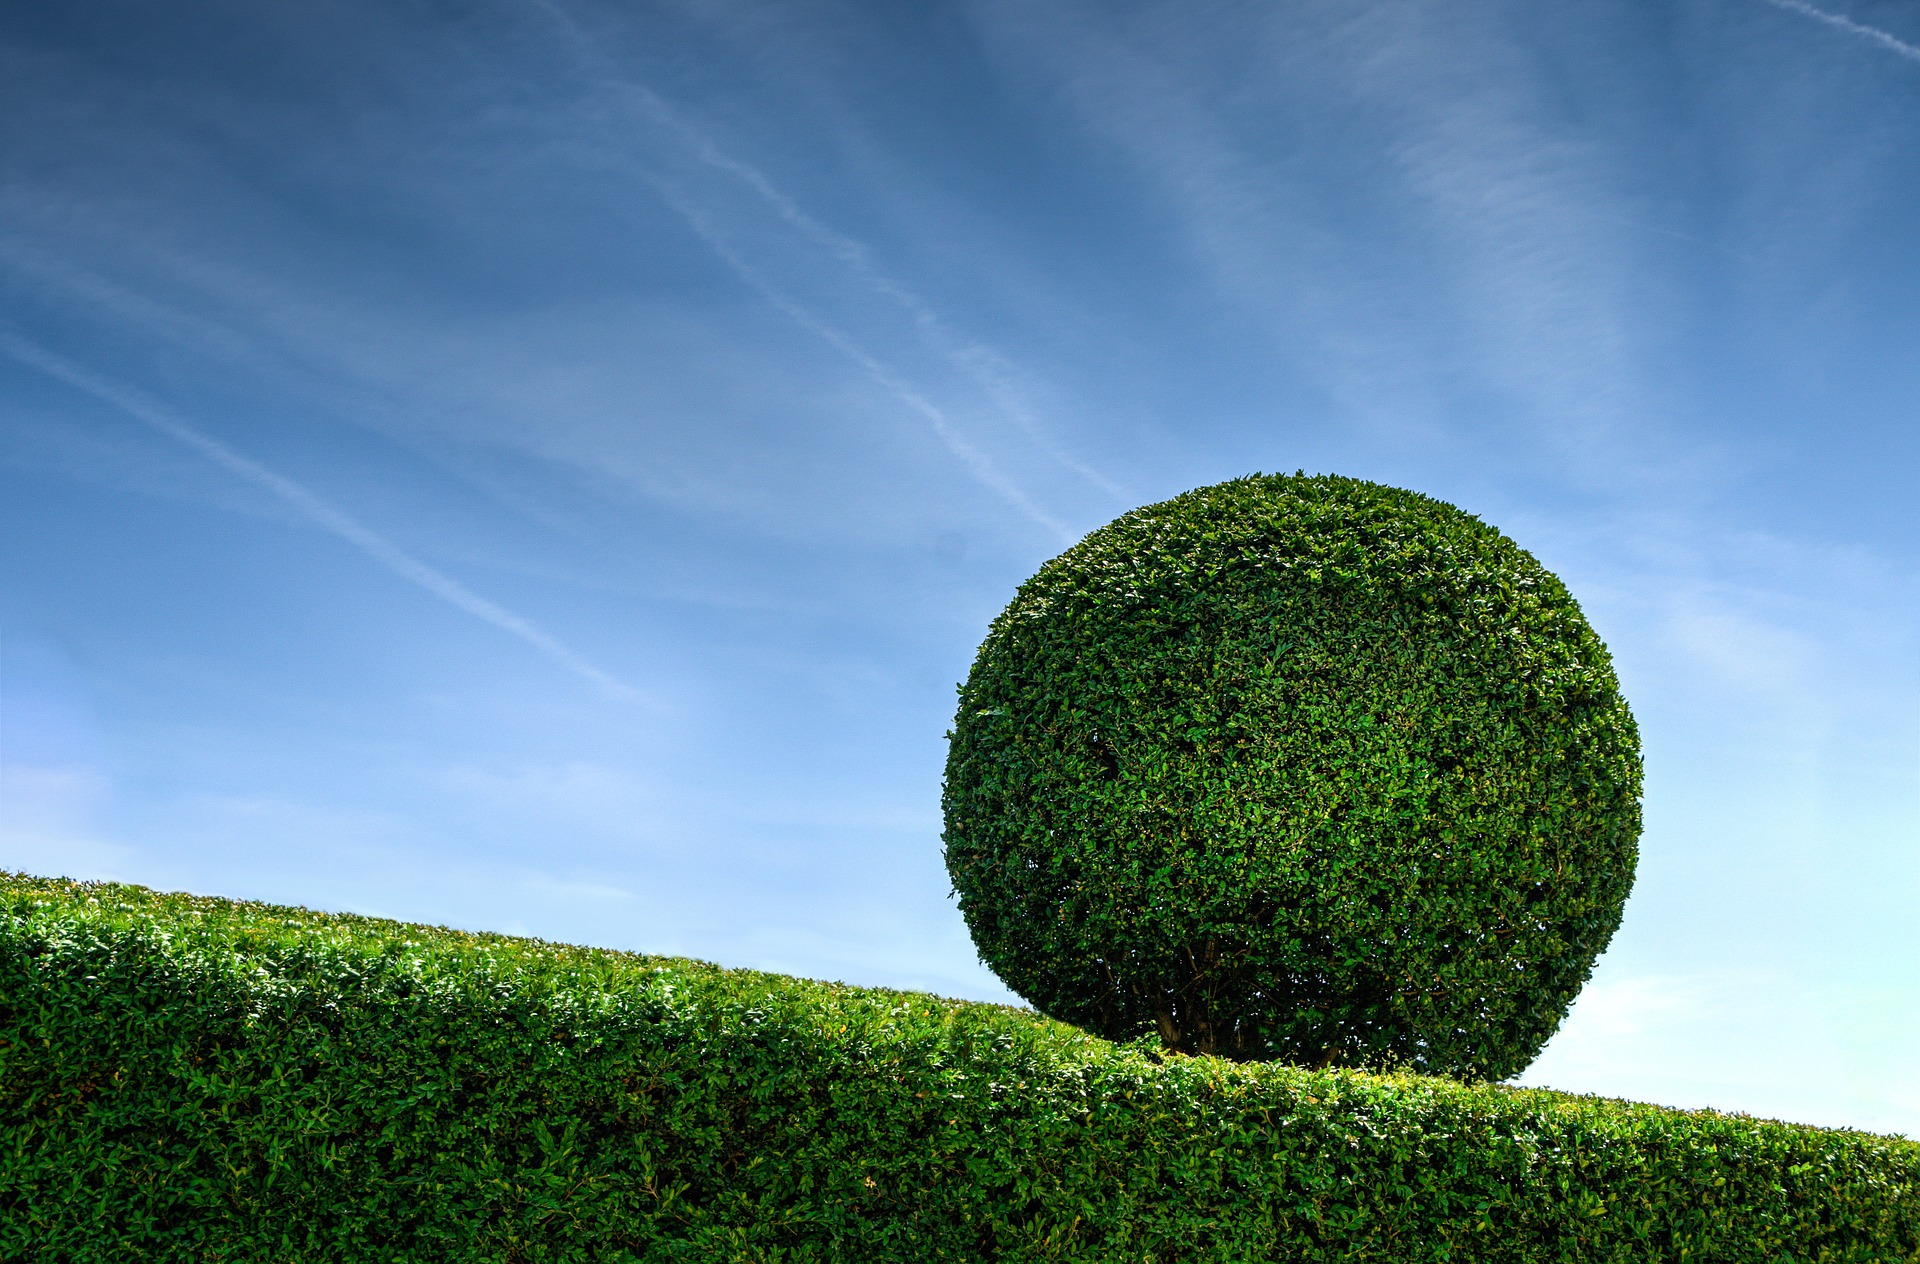 hedge-cutting-ideas-large-sphere